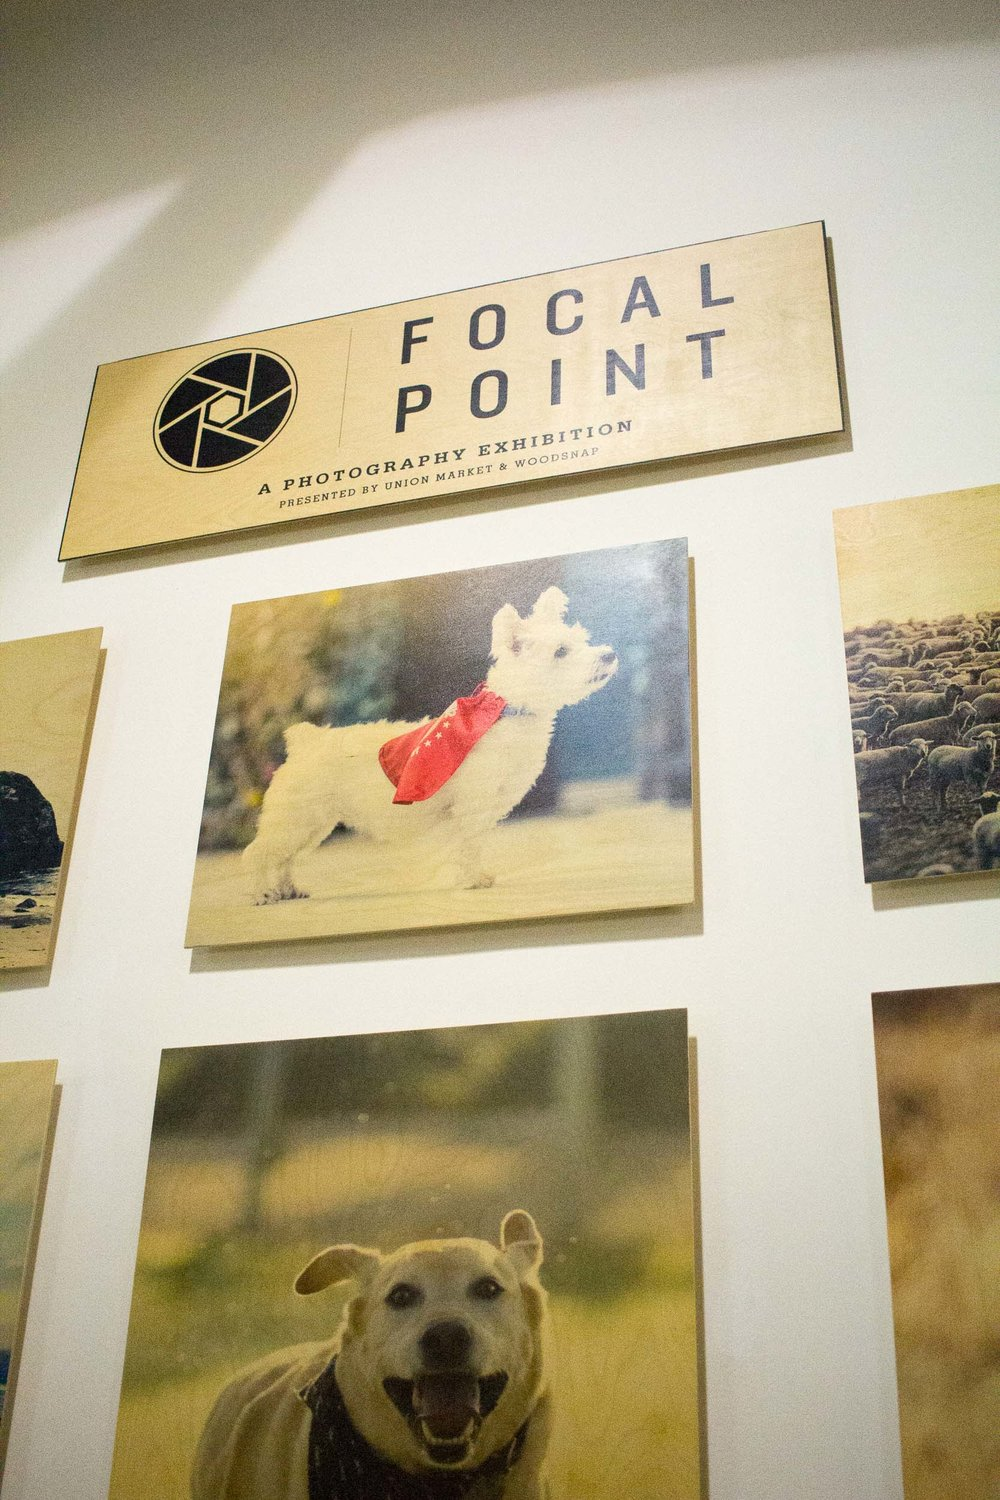 Steamer Lee Dog Photography - Focal Point Mission Viejo WoodSnap Exhibit - 10.jpg